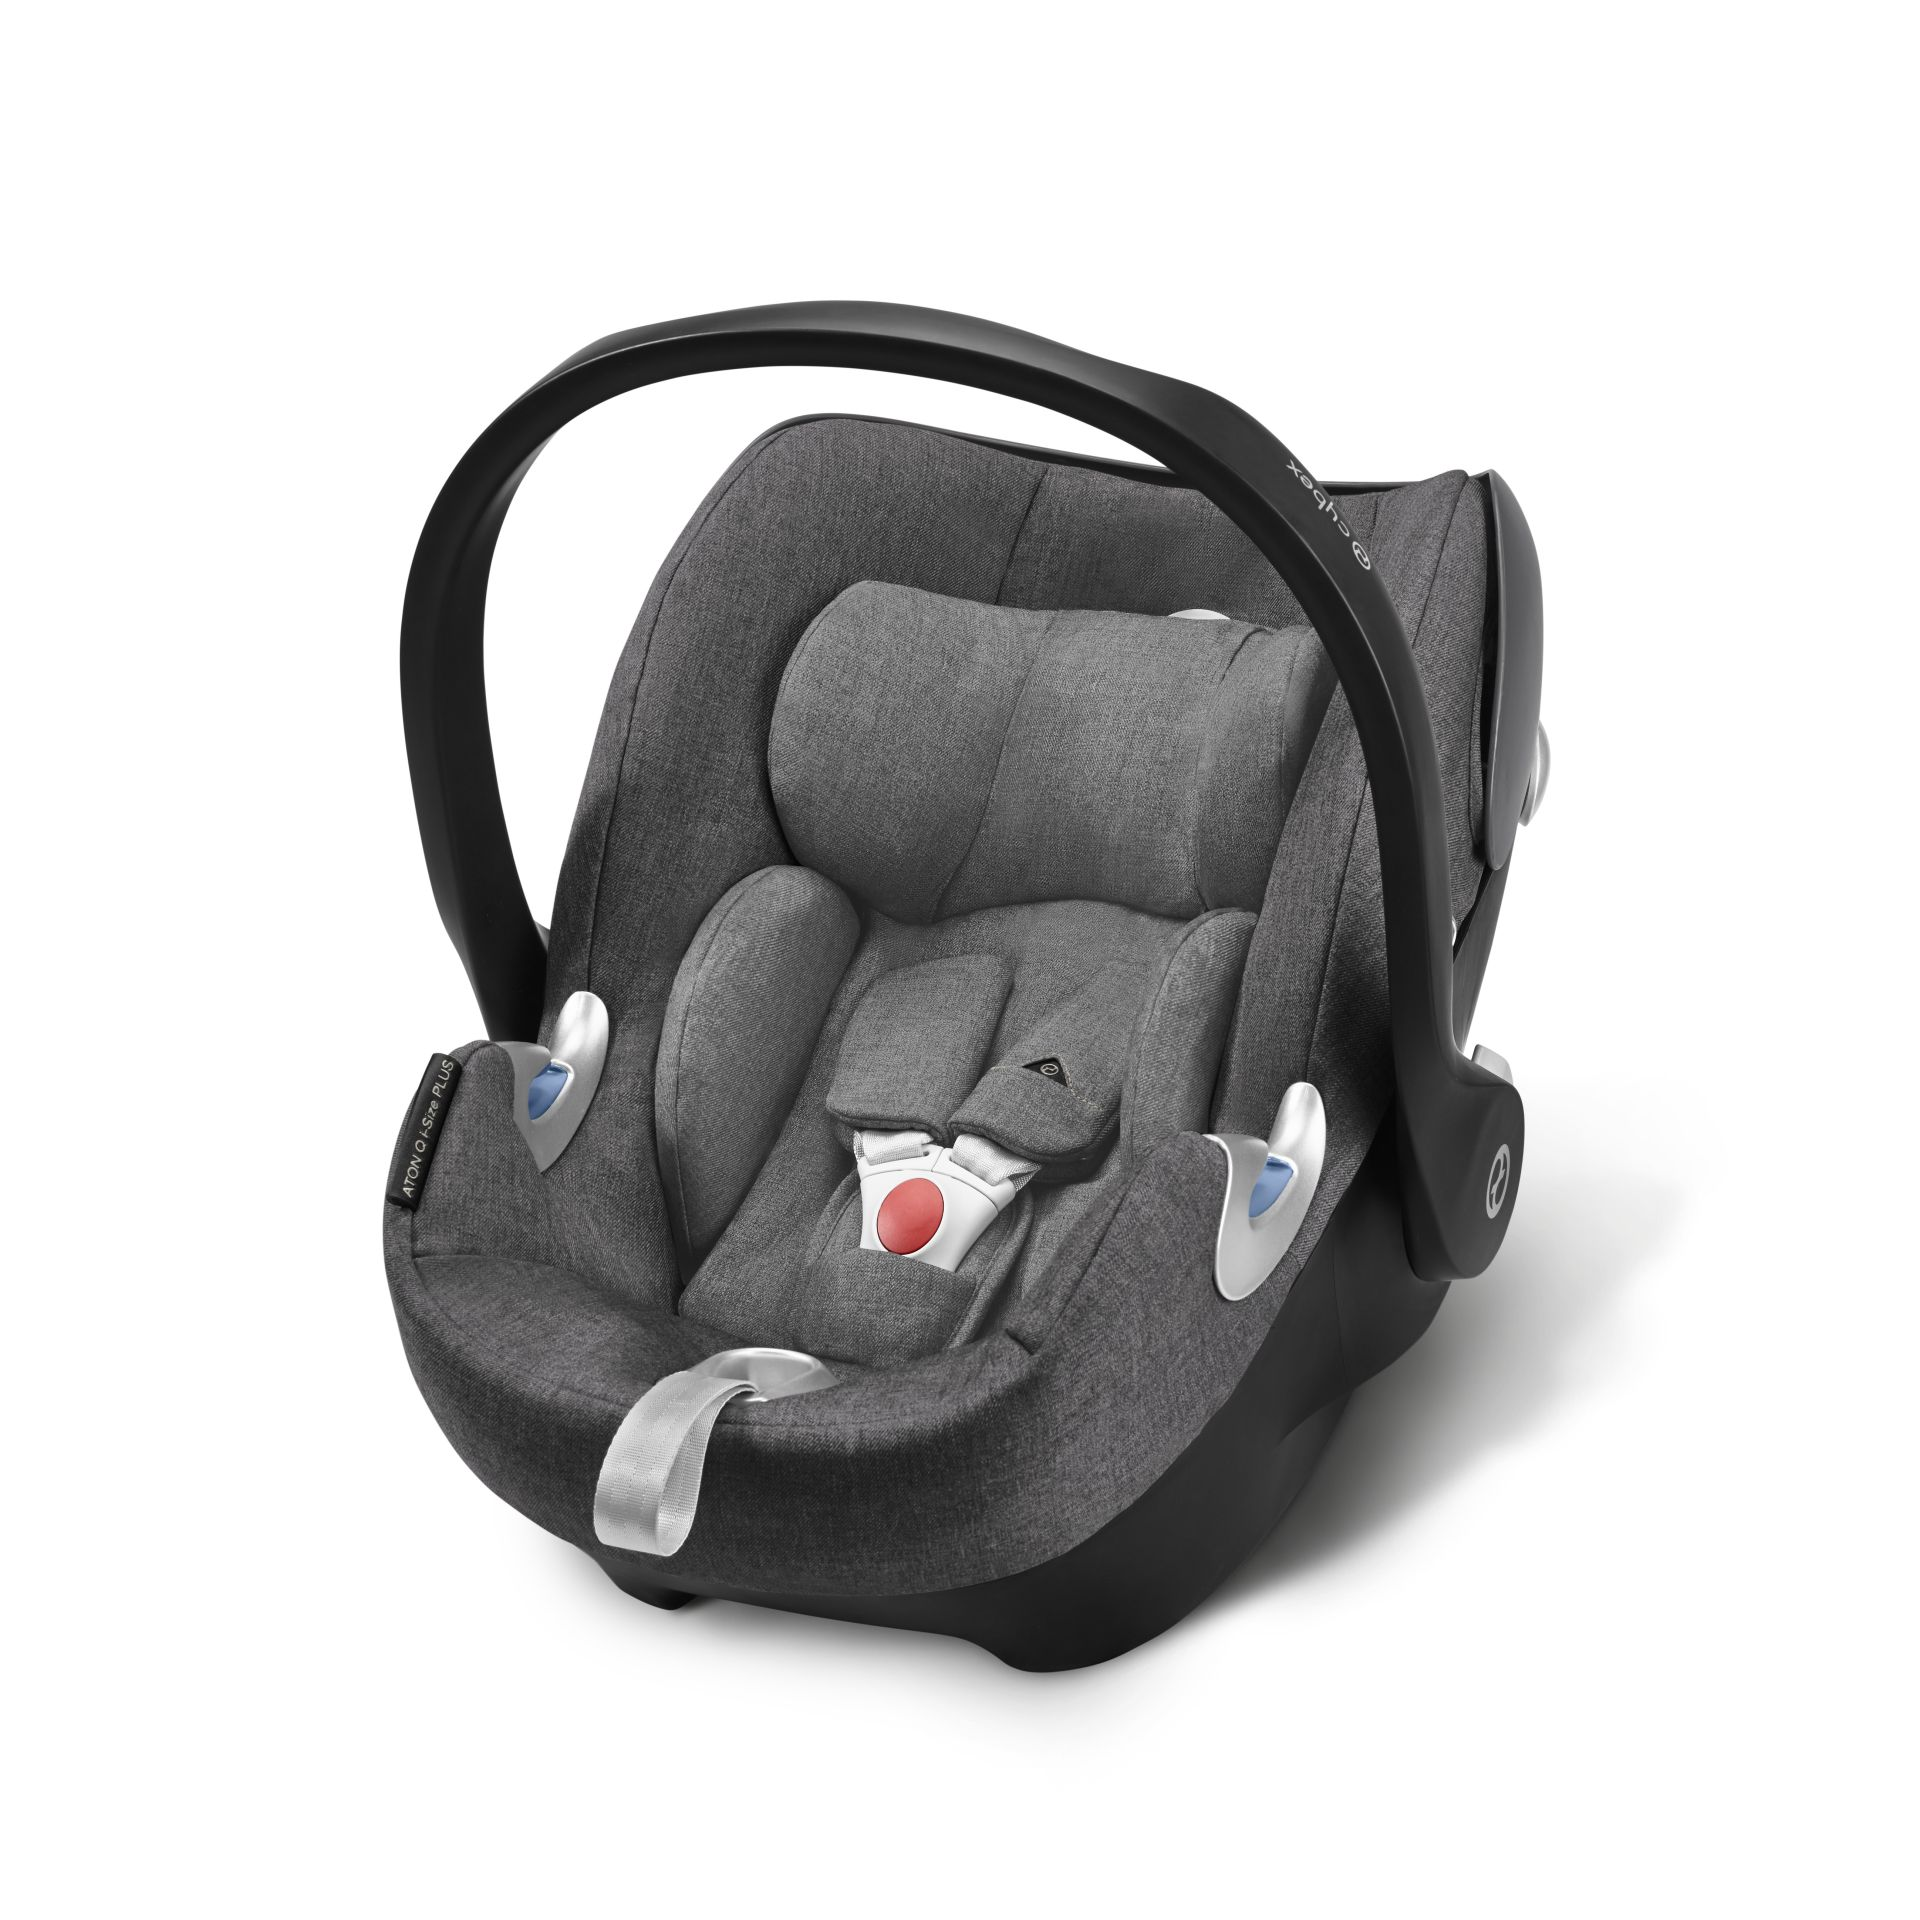 Baby Car Seat With Highest Safety Rating